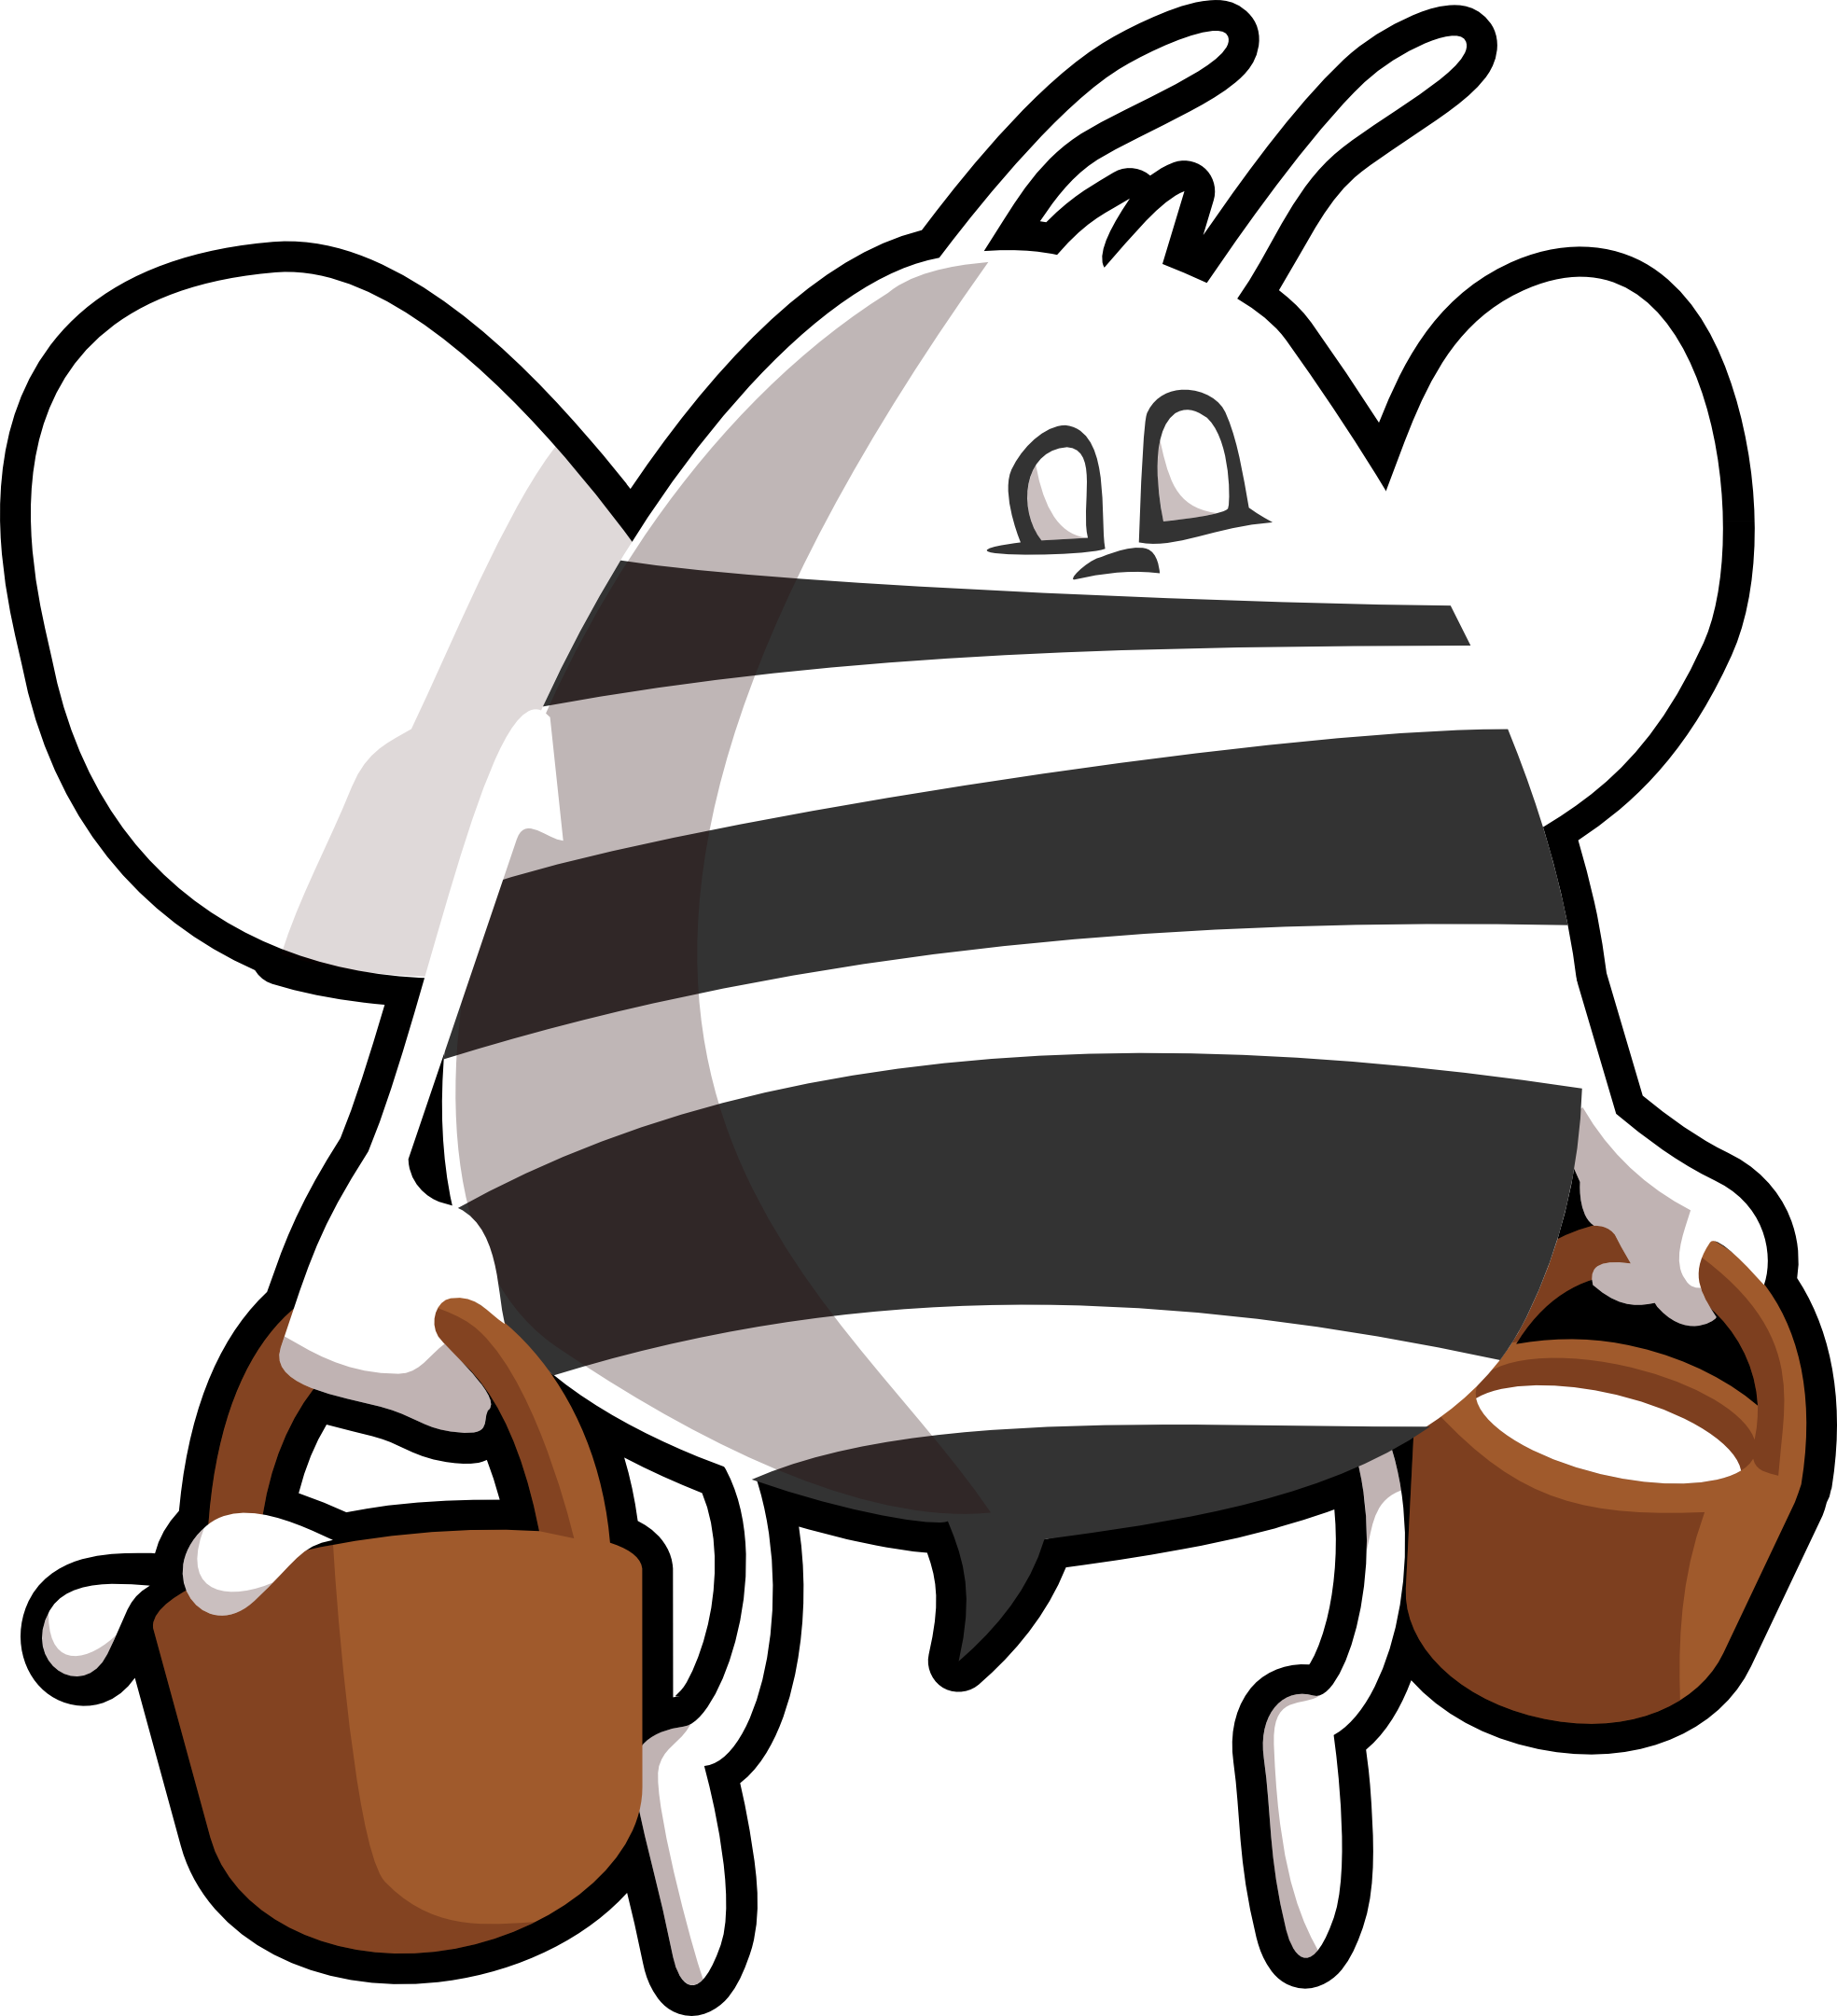 Black And White Cartoon Bee Clipart Free Image Download